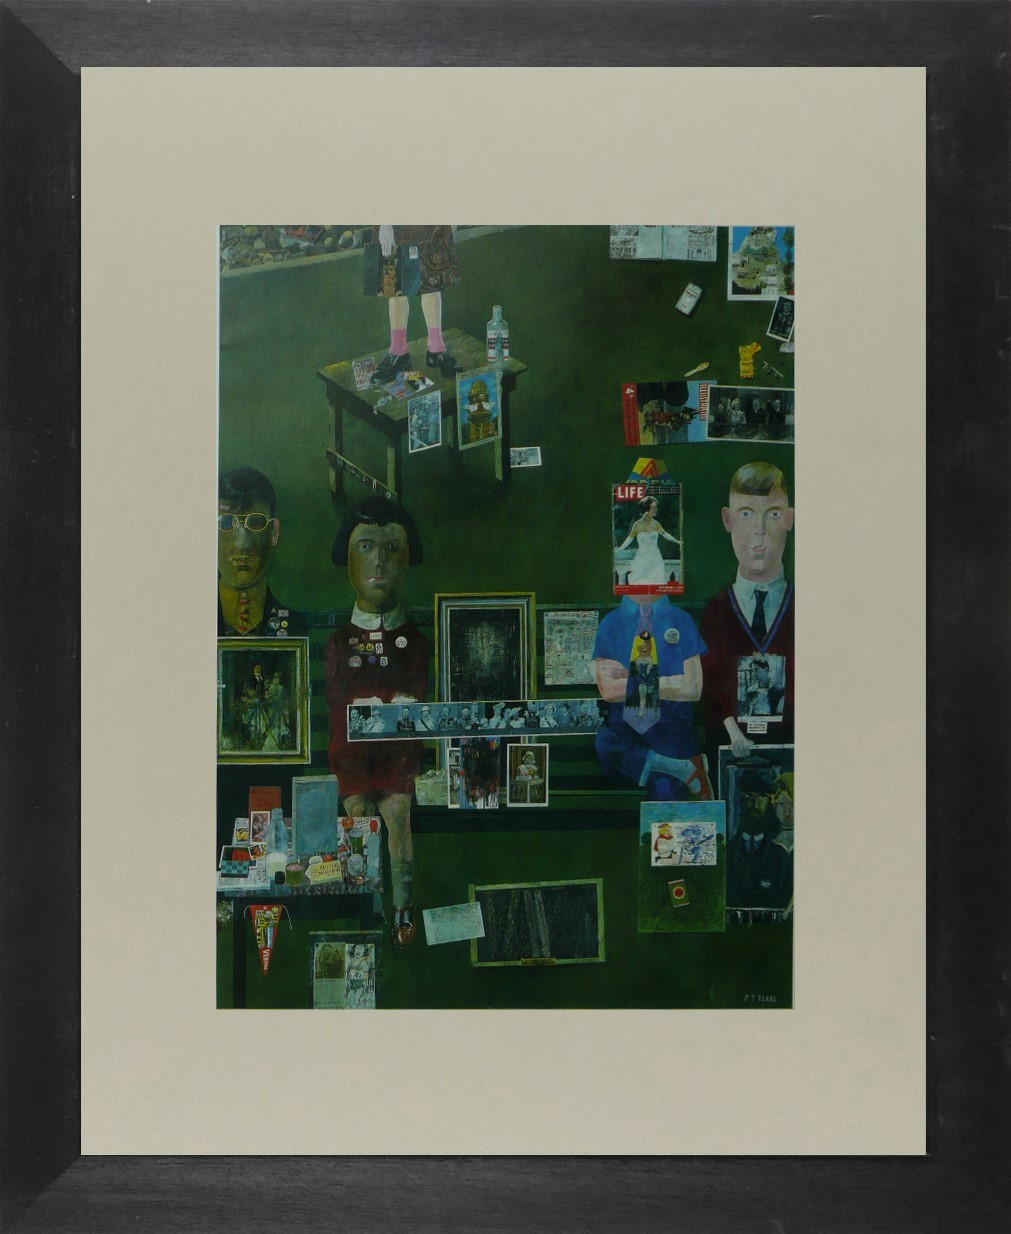 On the Balcony - Peter Blake - Framed Picture 11 x 14